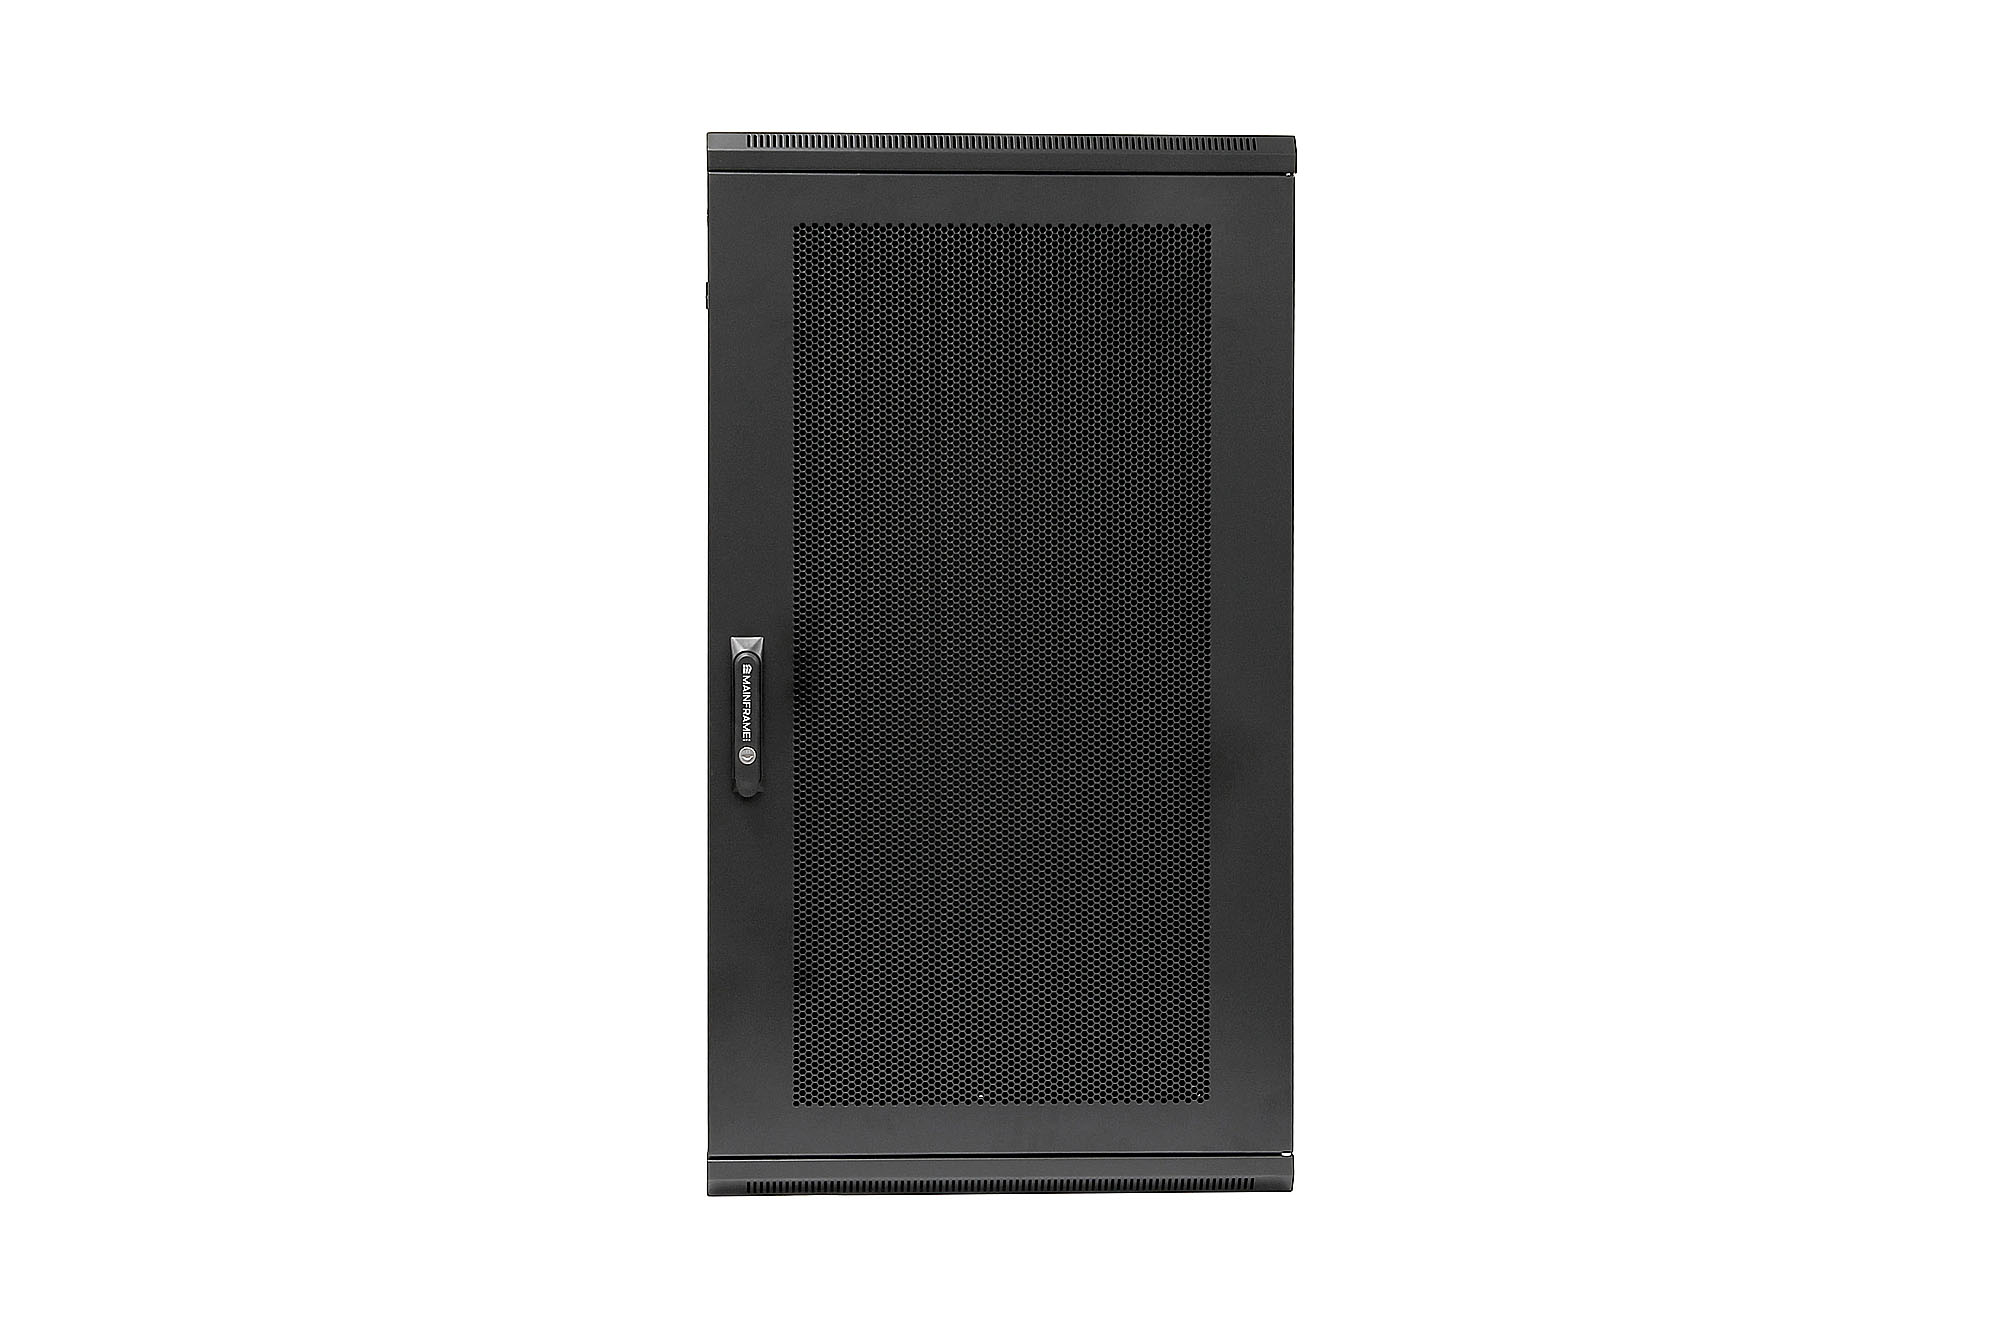 MAINFRAME 22U FIXED WALL MOUNT CABINET